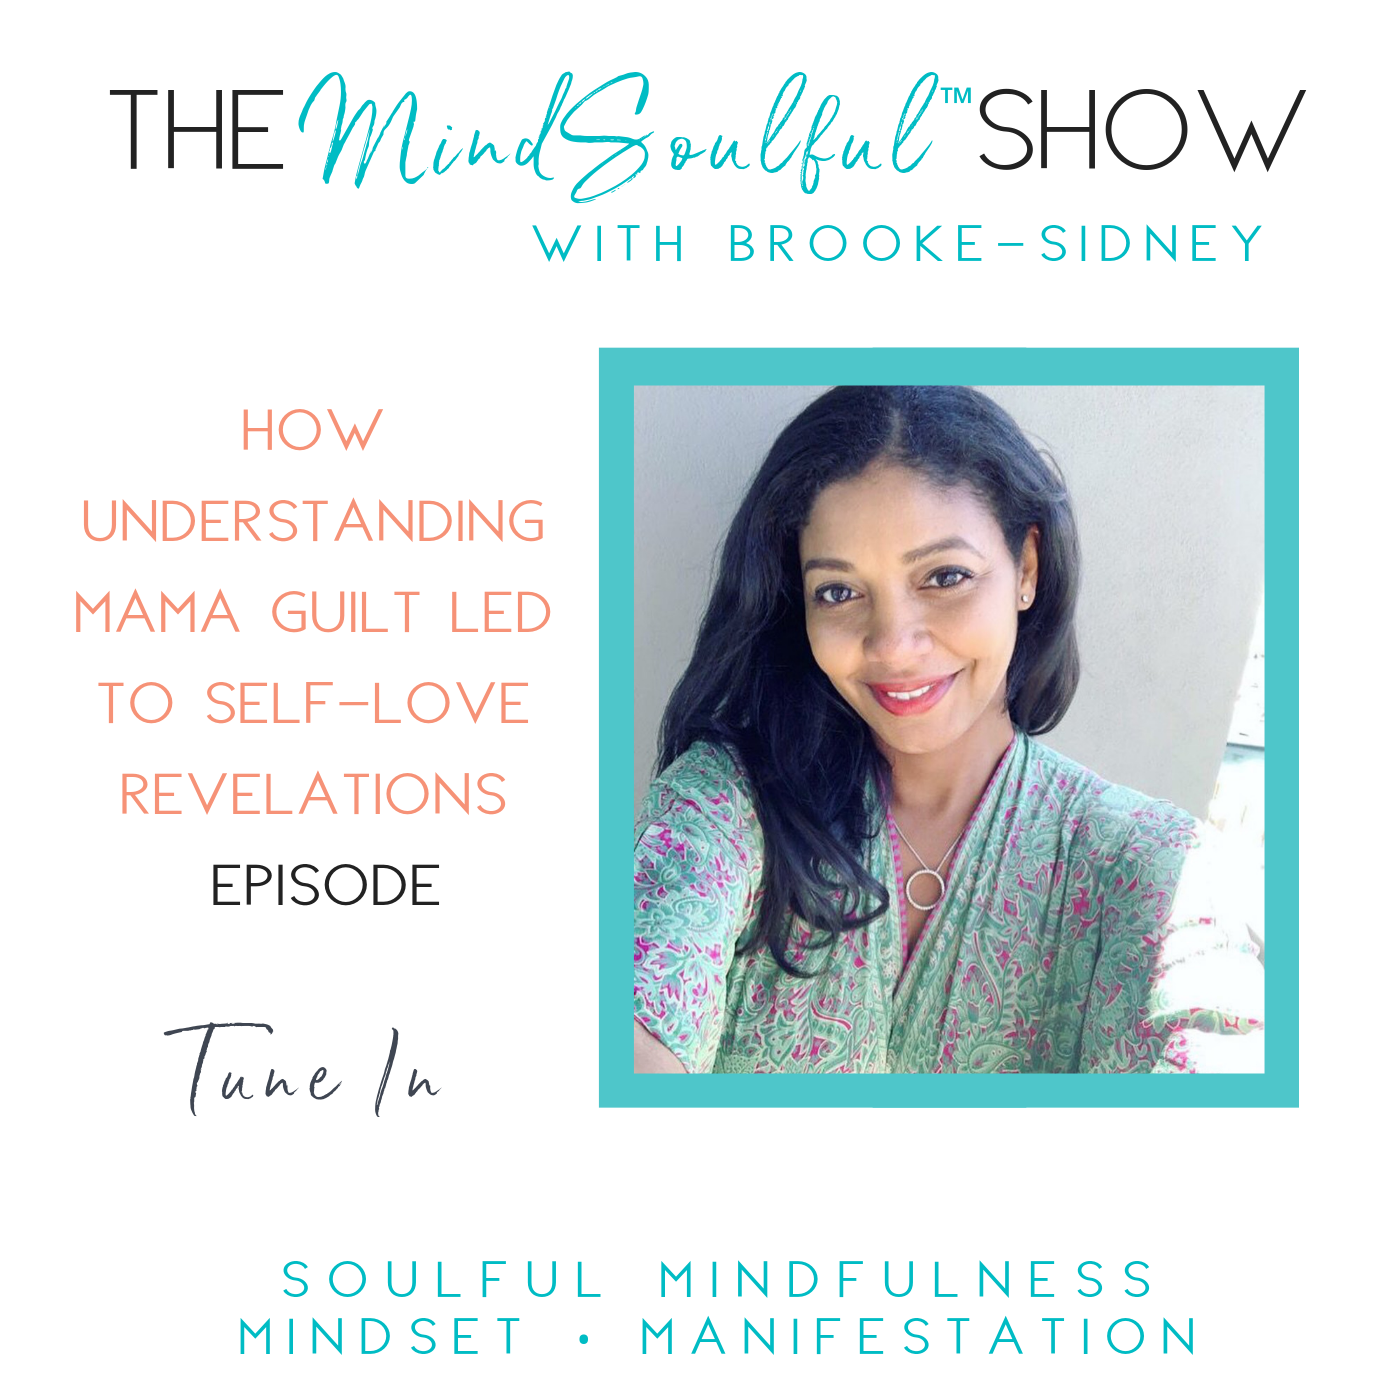 THE MINDSOULFUL SHOW - HOW UNDERSTANDING MAMA GUILT LED TO SELF-LOVE REVELATIONS Episode.png